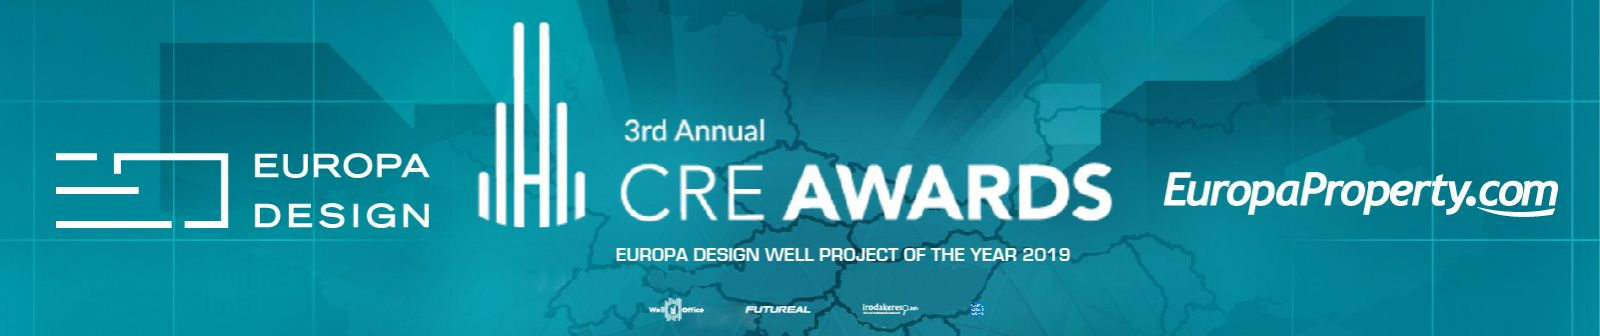 EUROPA PROPERTY WELL - PROJECT OF THE YEAR 2019 BY EUROPA DESIGN